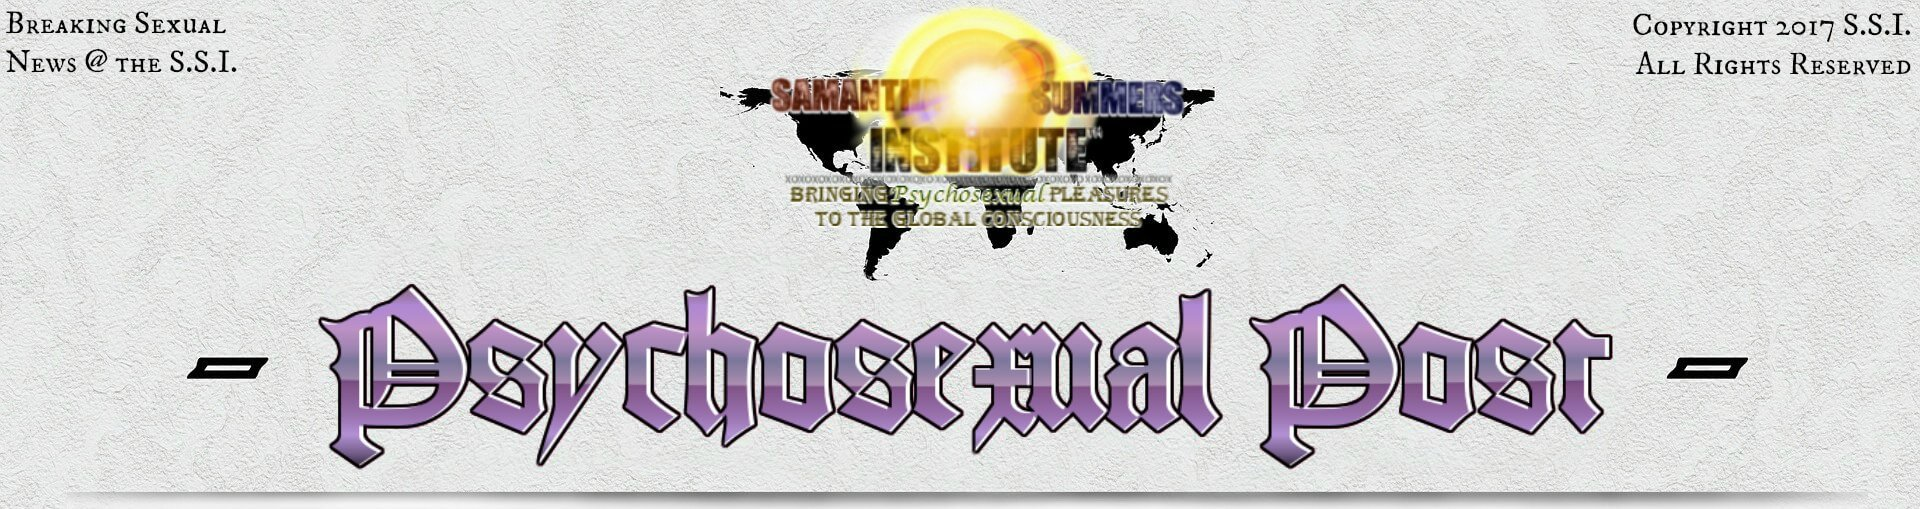 SSI-News-Headliner